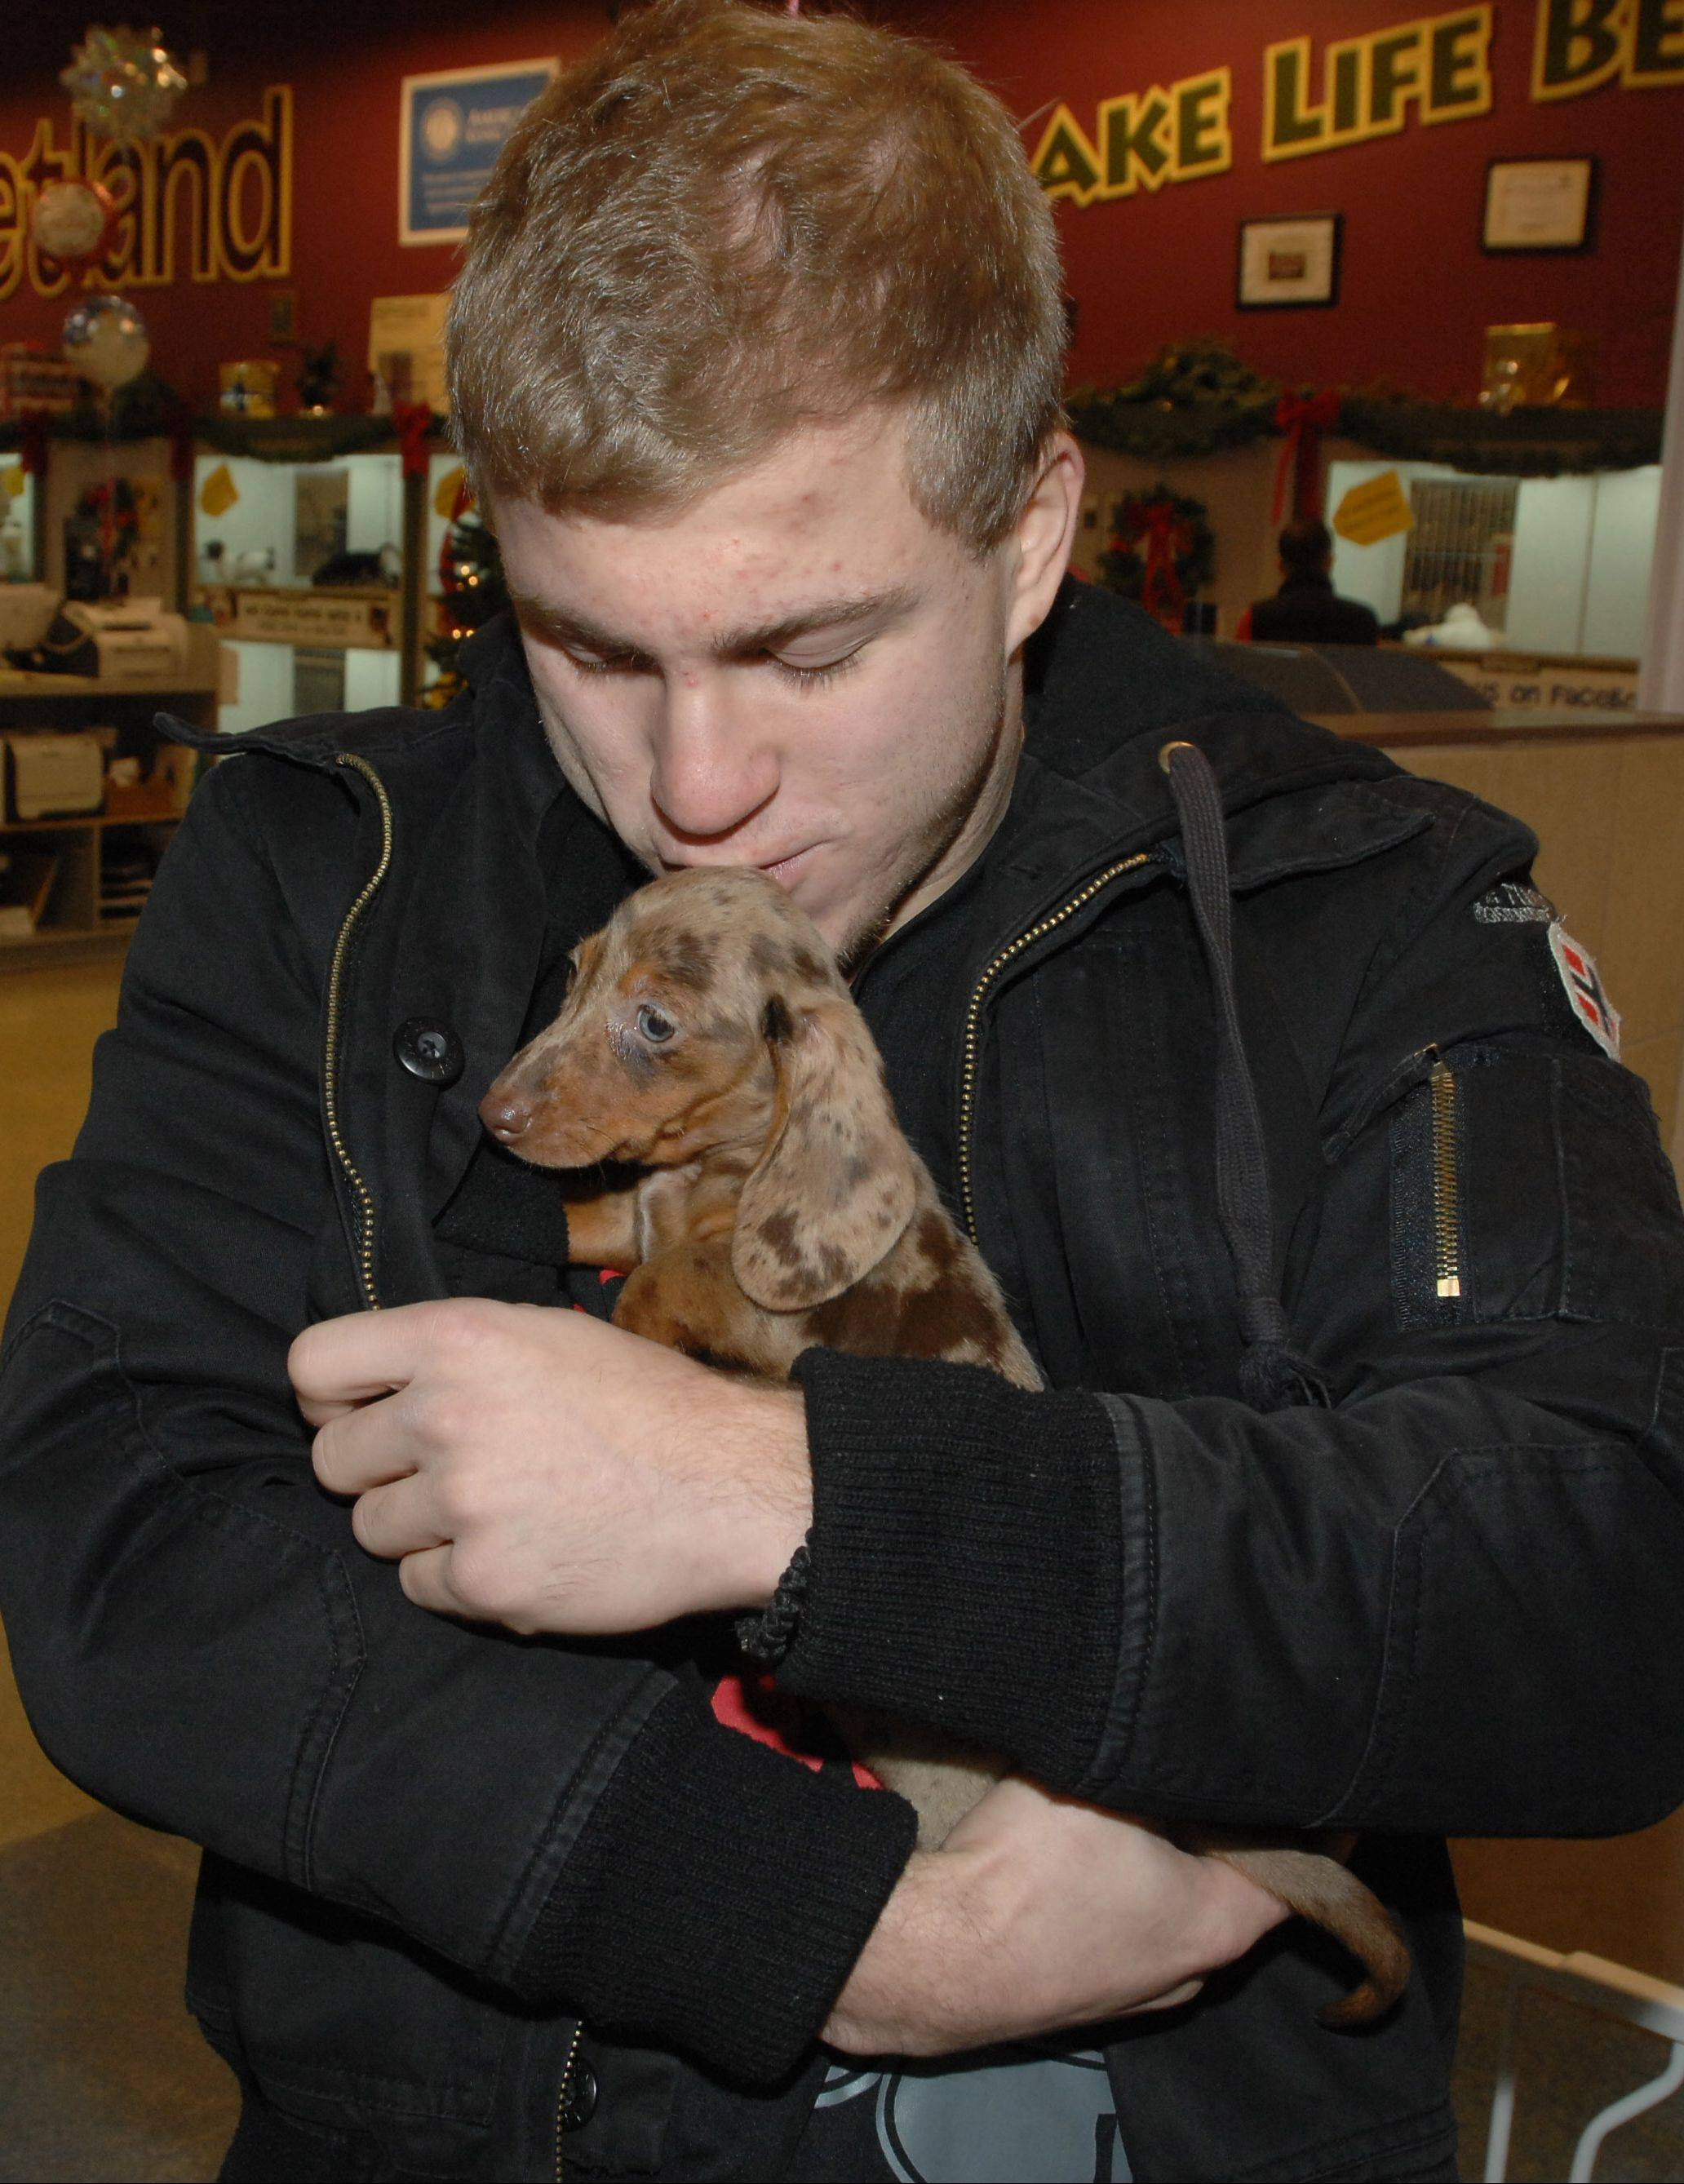 Petland Naperville donated a Dachshund to Matt Plackowski, the oldest son of Elzbieta Plackowska. Plackowska is accused of killing two children, including Matt's brother, and the family dog.